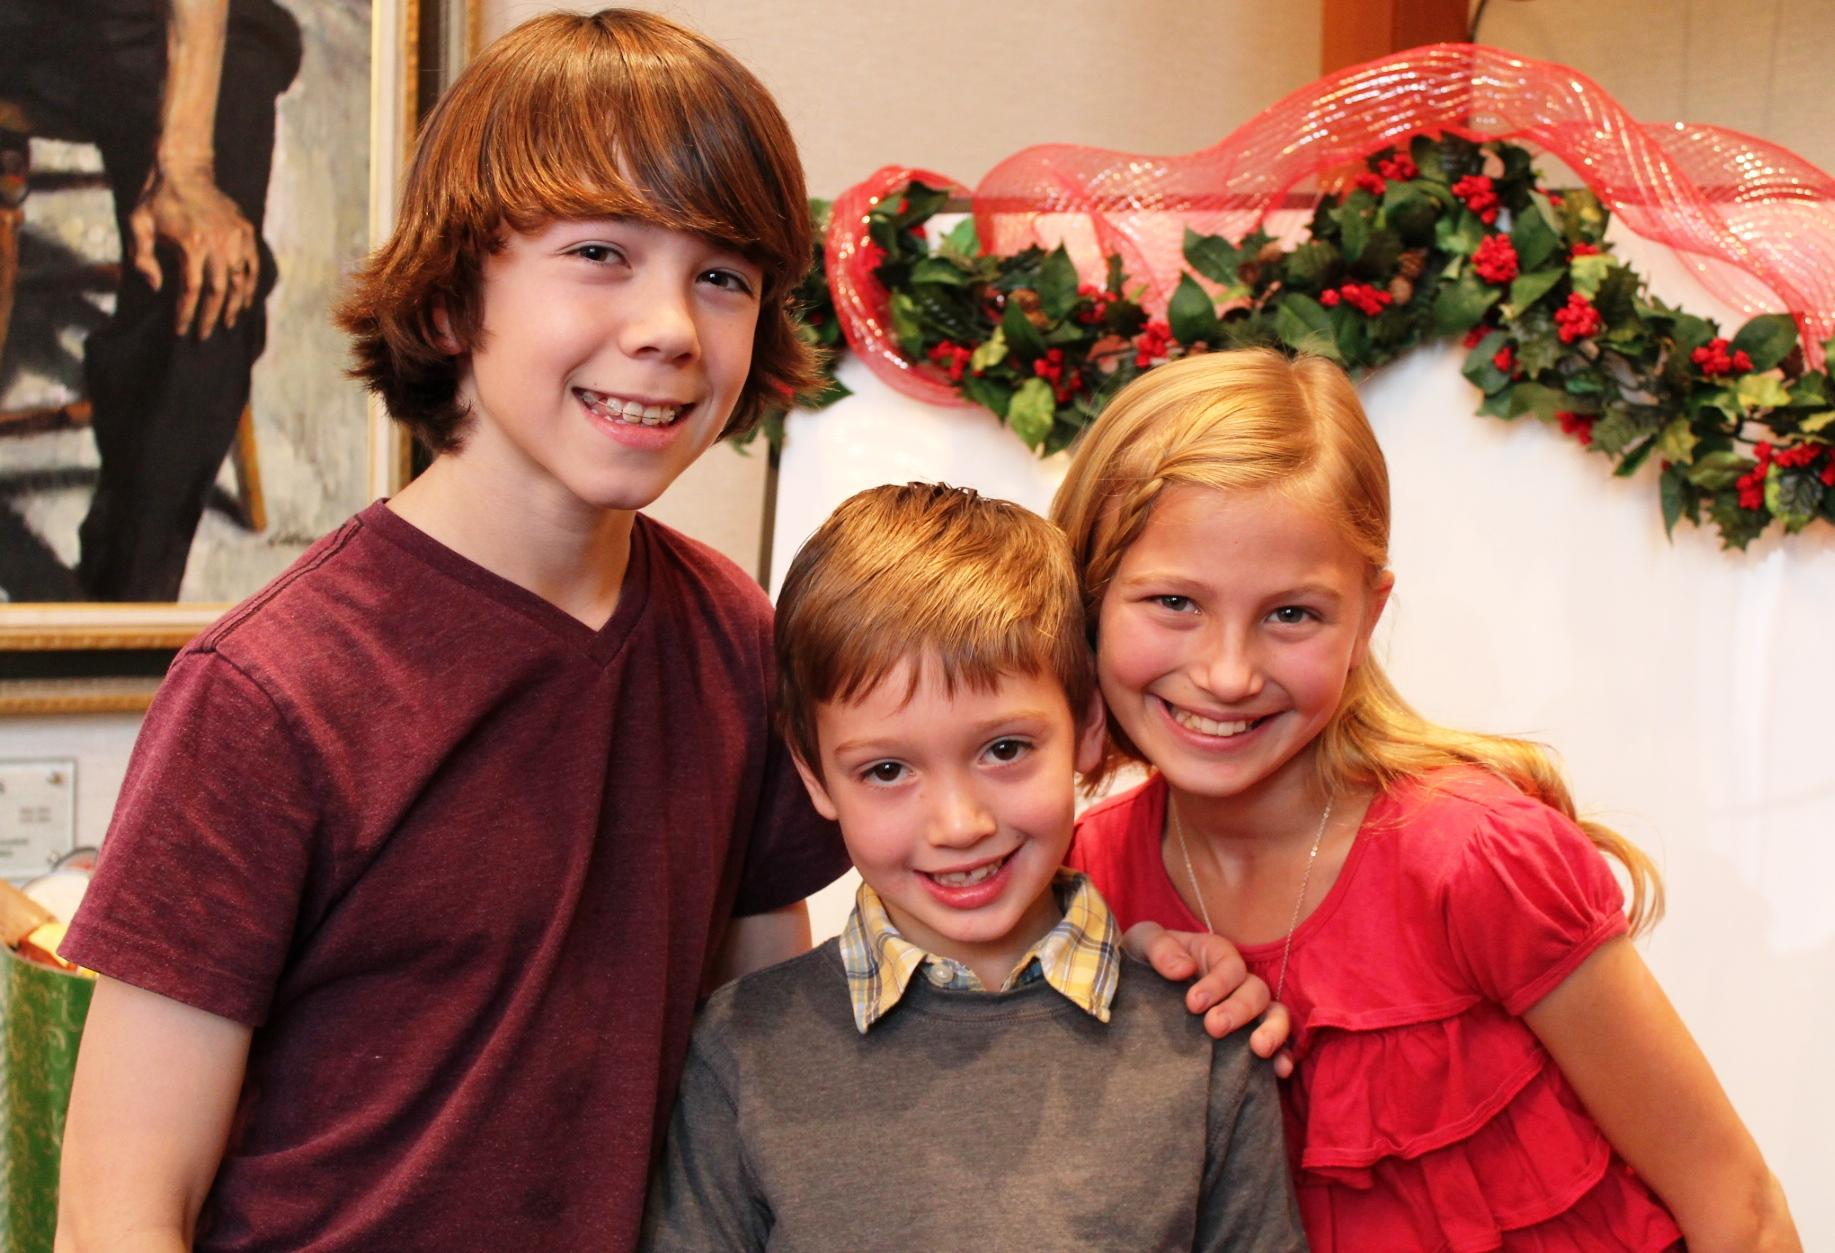 Pioneer Theatre Asks Audience to Take a Page From Scrooge ...